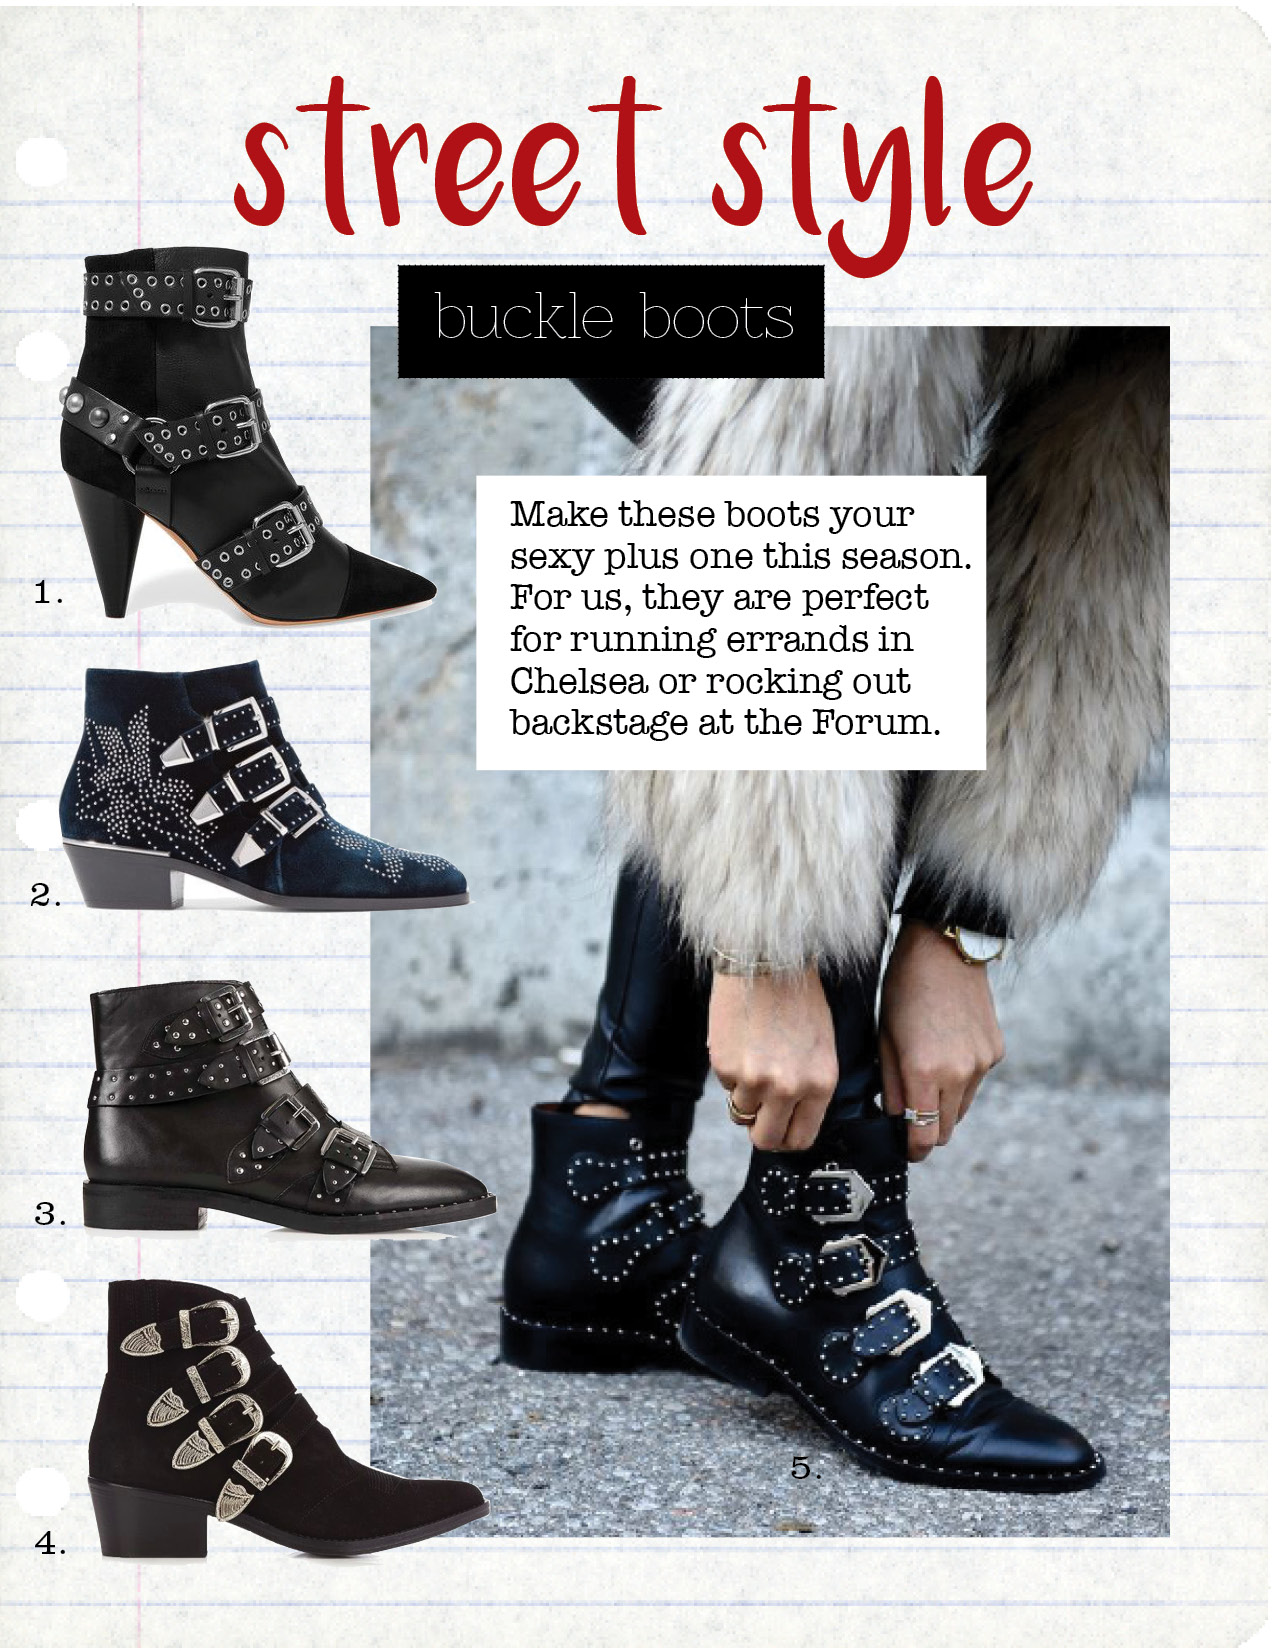 1. ISABEL MARANT LYSETT BUCKLED LEATHER AND SUEDE BOOTS, $781,  NET-A-PORTER.COM  2. CHLOE SUSANNA STUDDED VELVET ANKLE BOOTS, $1435,  NET-A-PORTER.COM  3. TOP SHOP AMY STUDDED ANKLE BOOTS, $160,  US.TOPSHOP.COM  4. TOGA BUCKLE SUEDE ANKLE BOOTS, $415,  MATCHESFASHION.COM  5. GIVENCHY STUDDED ANKLE BOOTS IN BLACK LEATHER, $1395,  NORDSTOM.COM